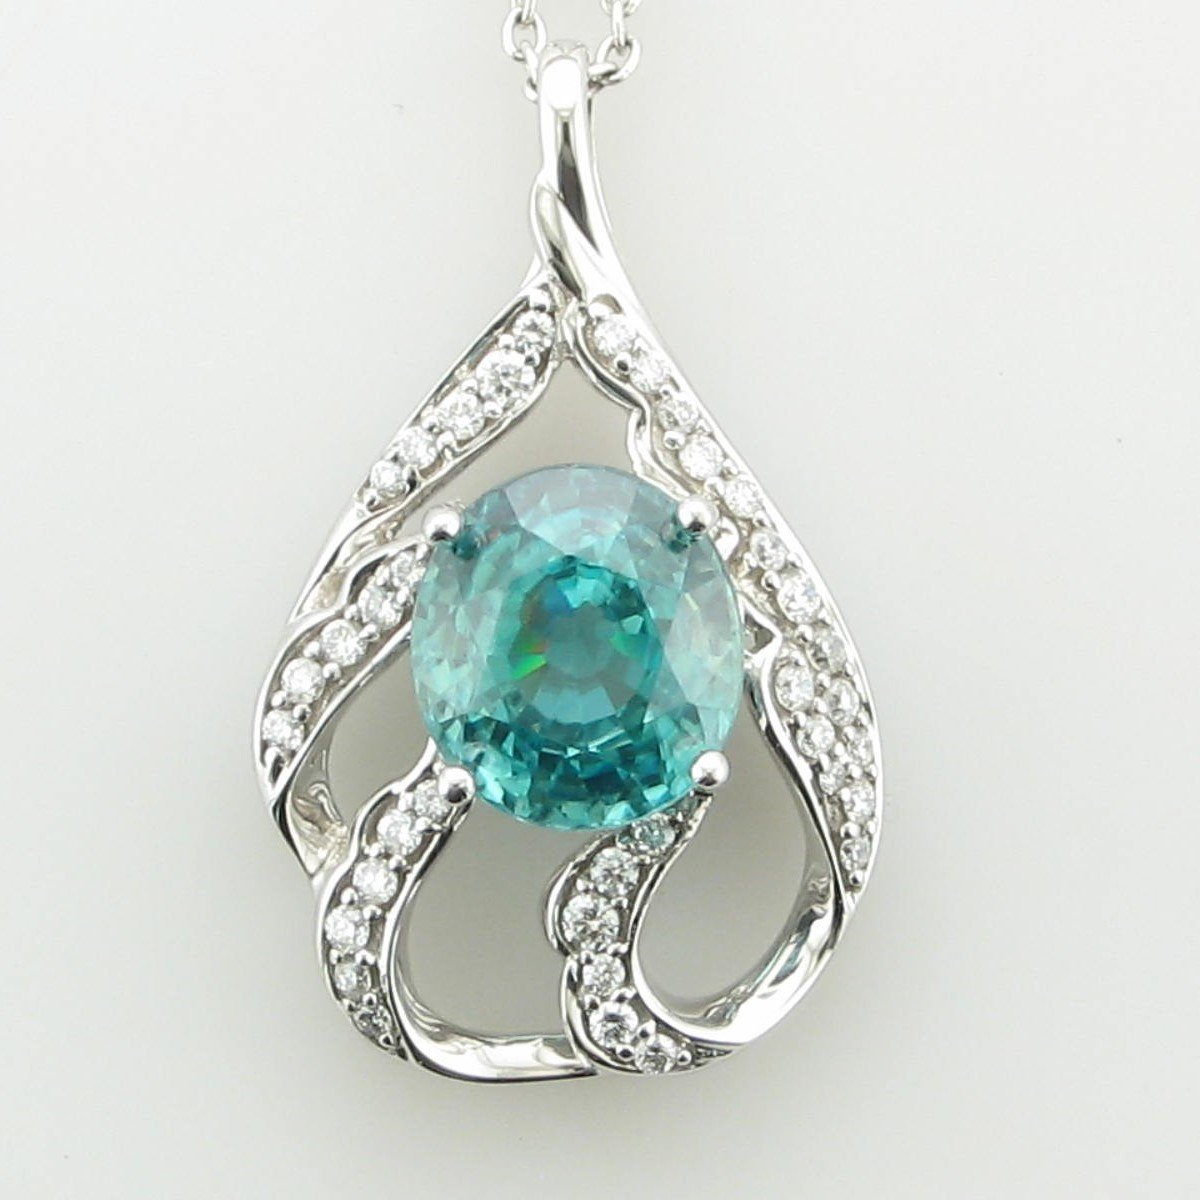 4.43ct Blue Zircon and Diamond Pendant set in 18K White Gold